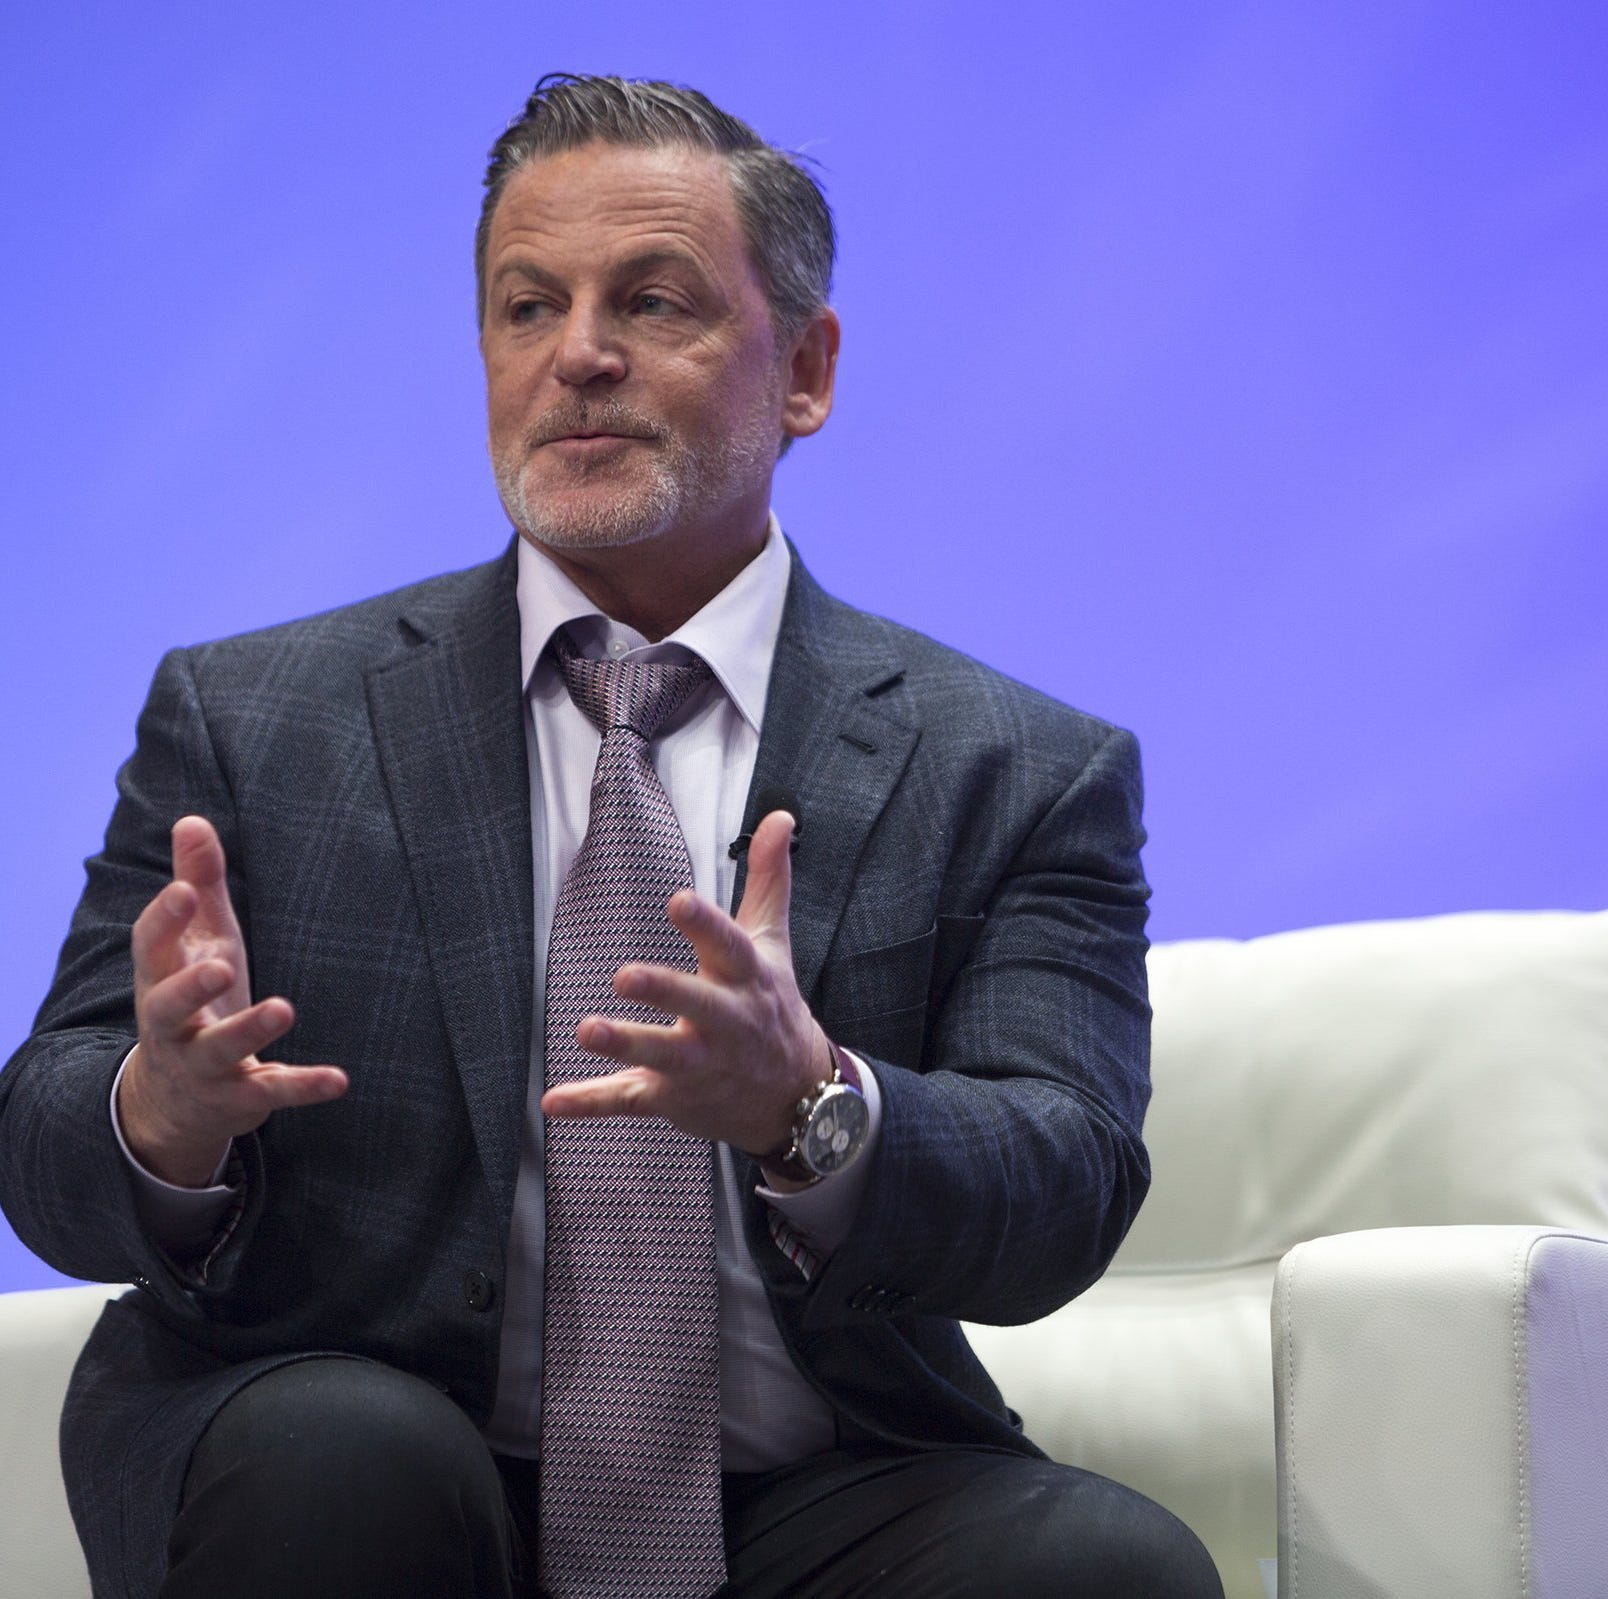 Chris Ilitch should sell the Detroit Tigers to Dan Gilbert. Here's why